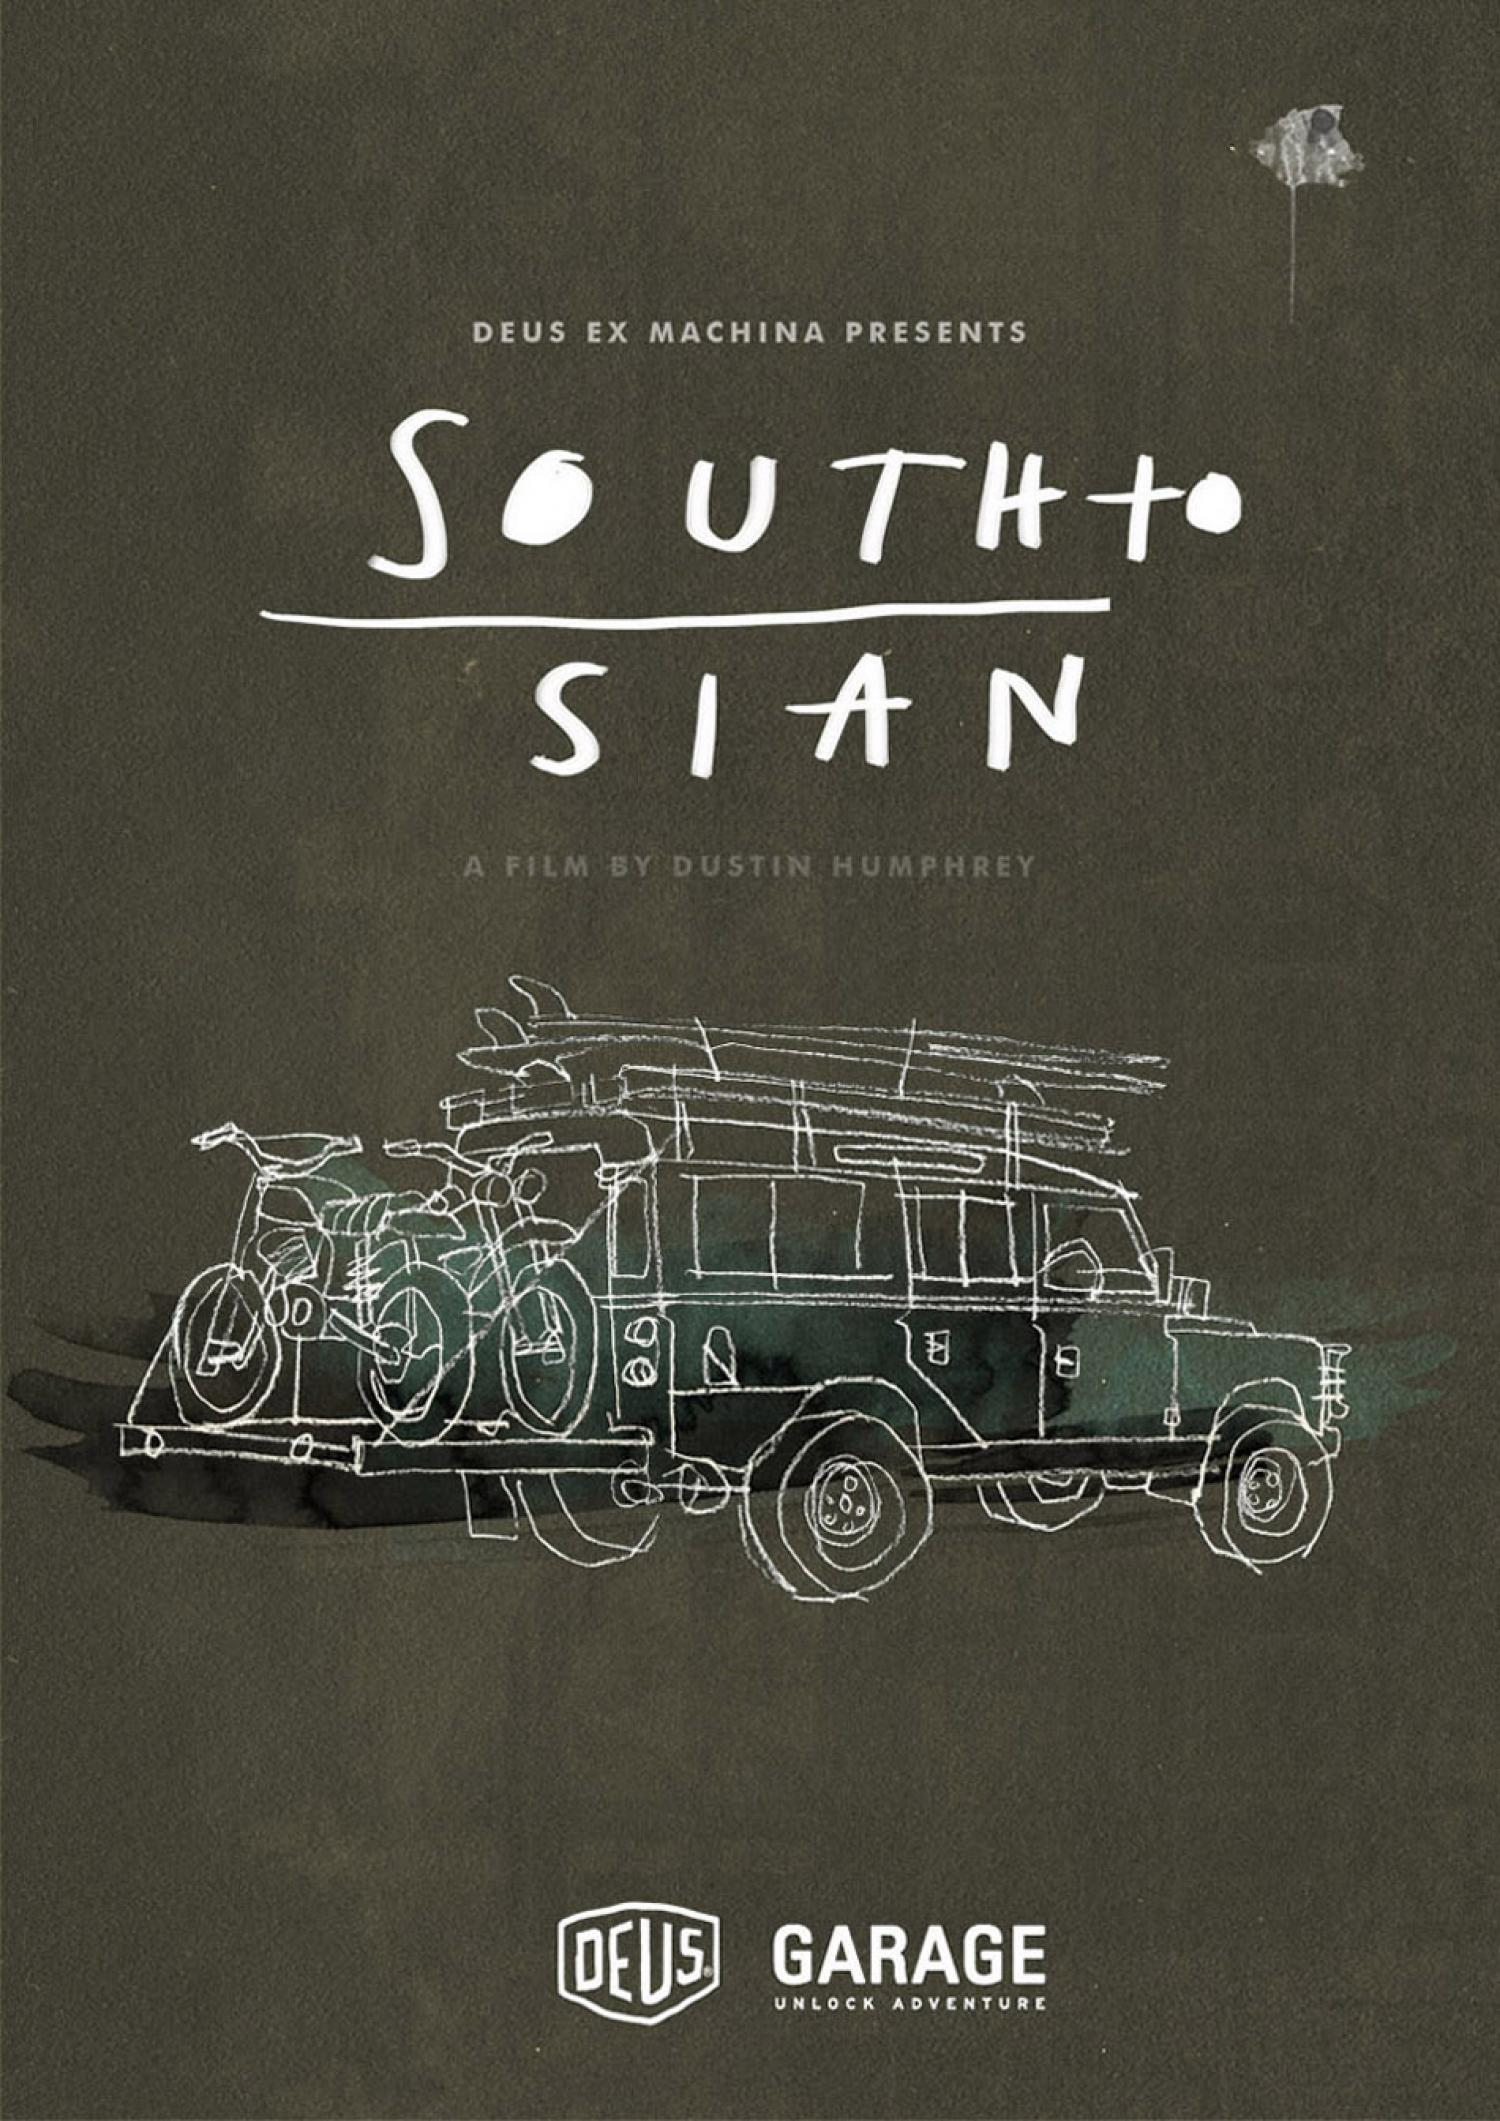 「SOUTH TO SIAN」